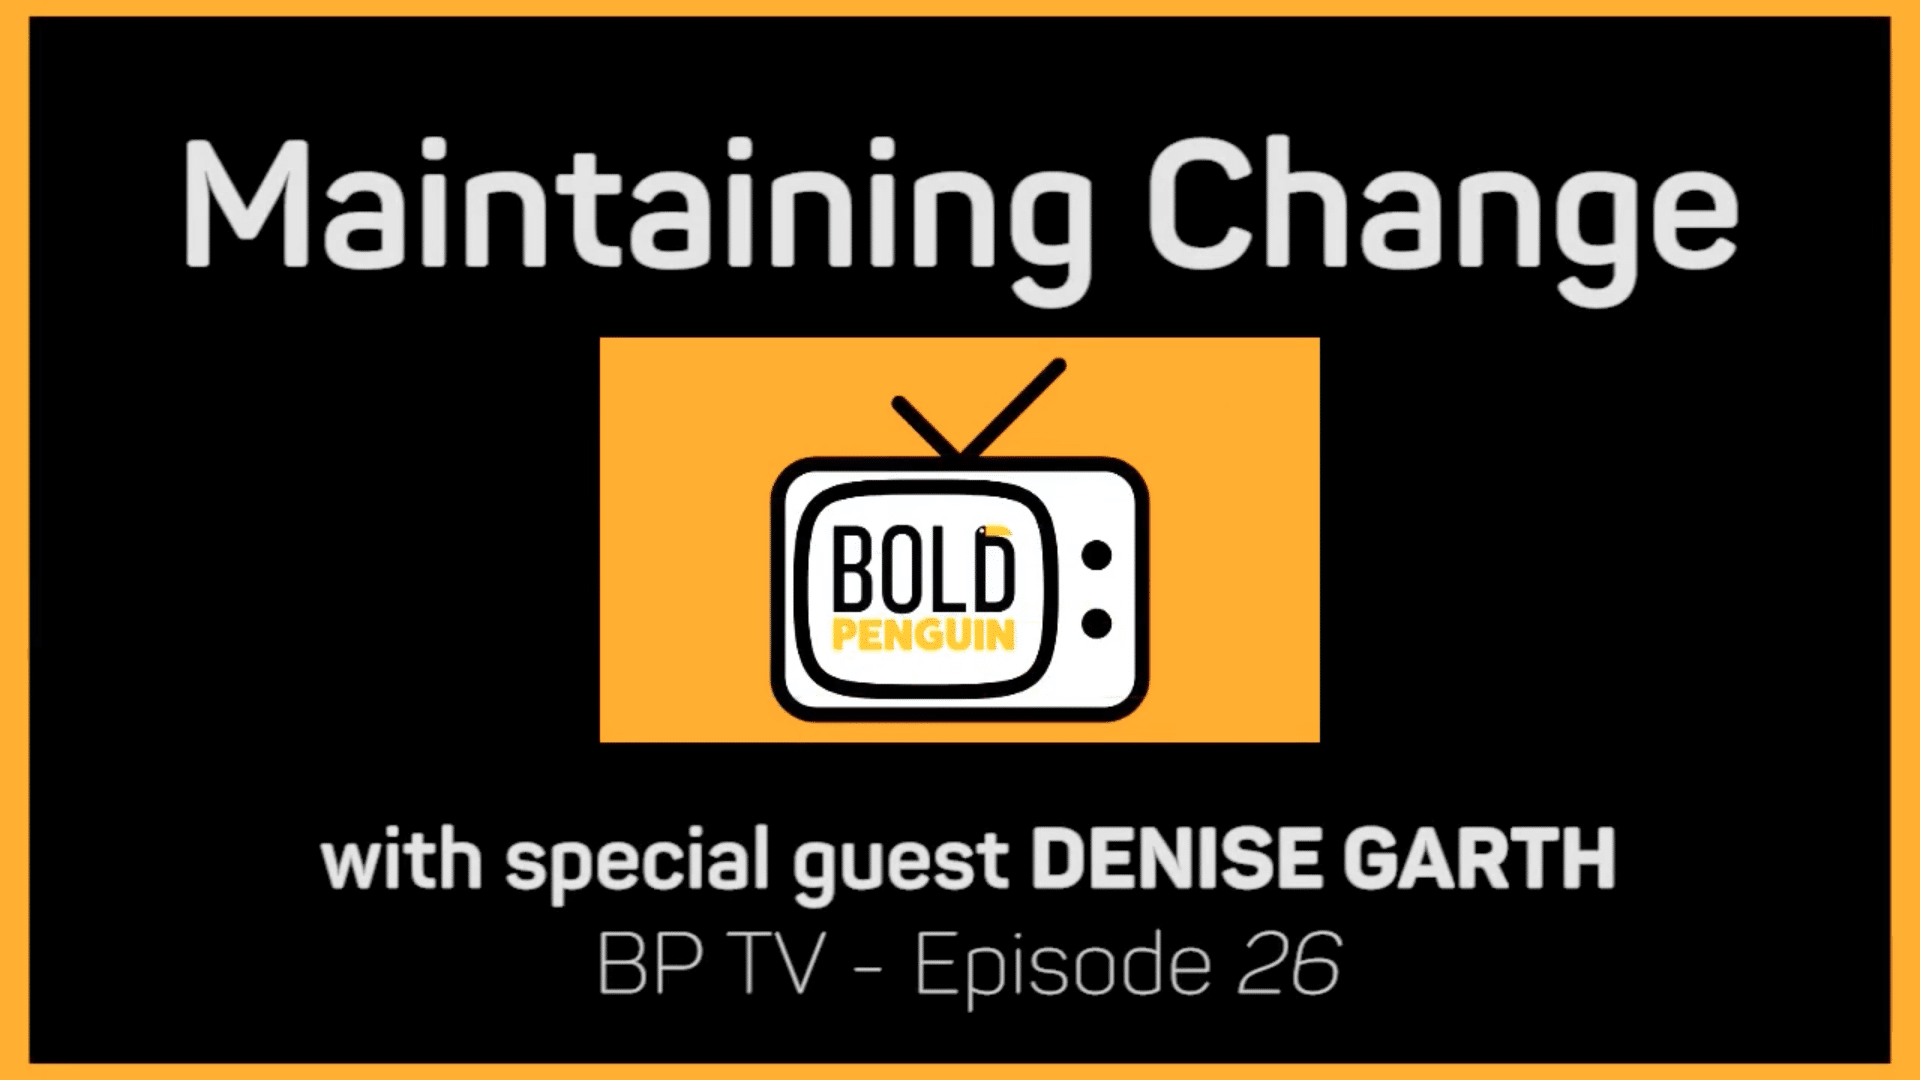 Maintaining Change with Denise Garth, Chief Strategy Officer of Majesco